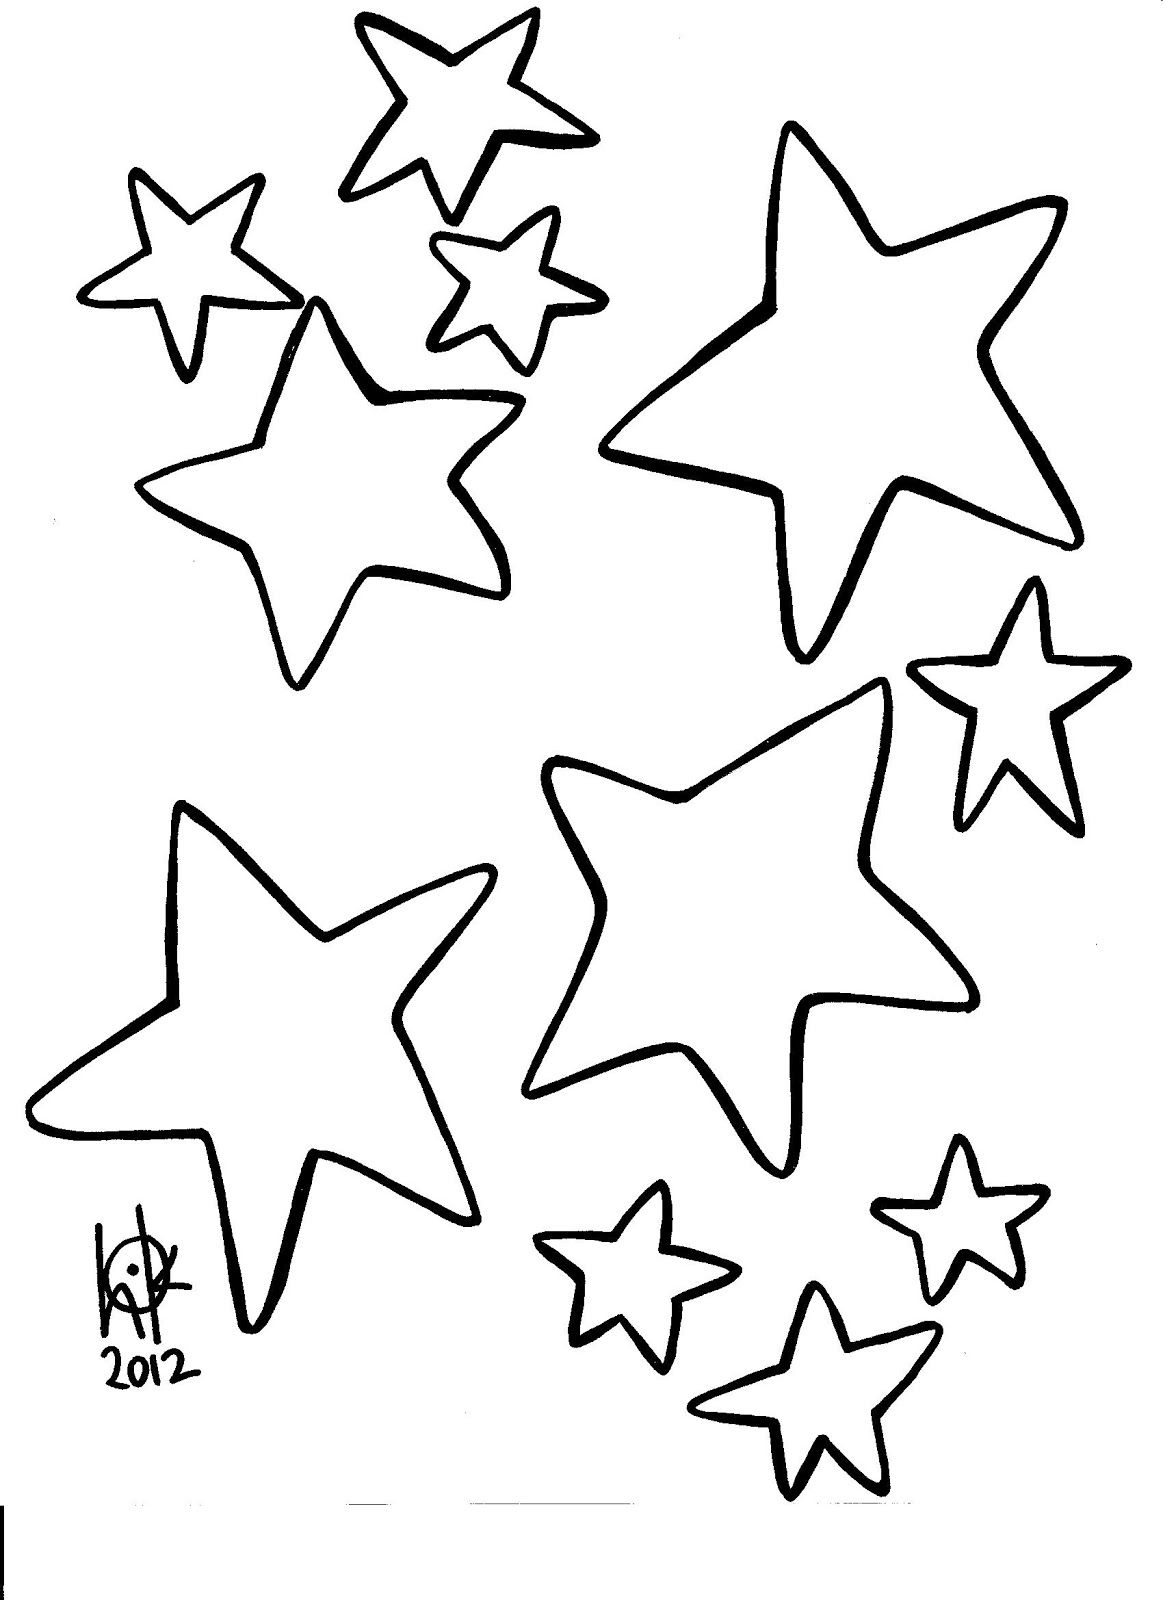 star outline coloring page star outline printable coloring home page coloring outline star